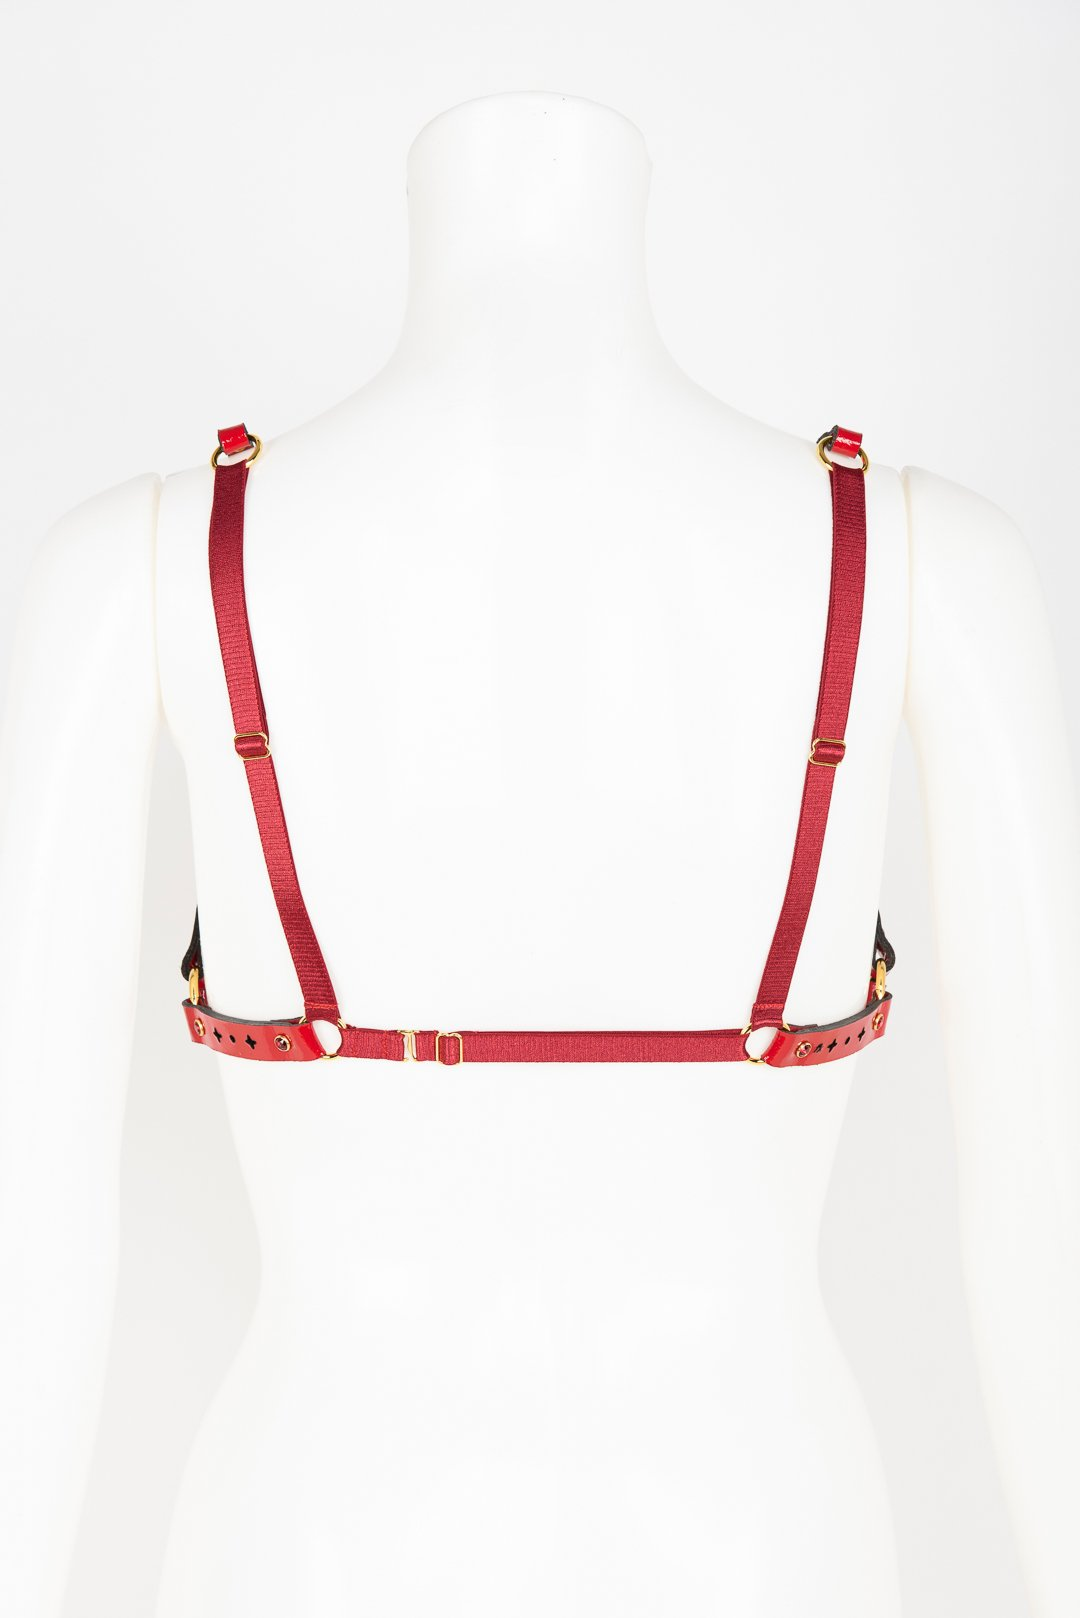 Luxury Patent Leather Harness Bra with Crystal Rivets Buy Online at Fraulein Kink